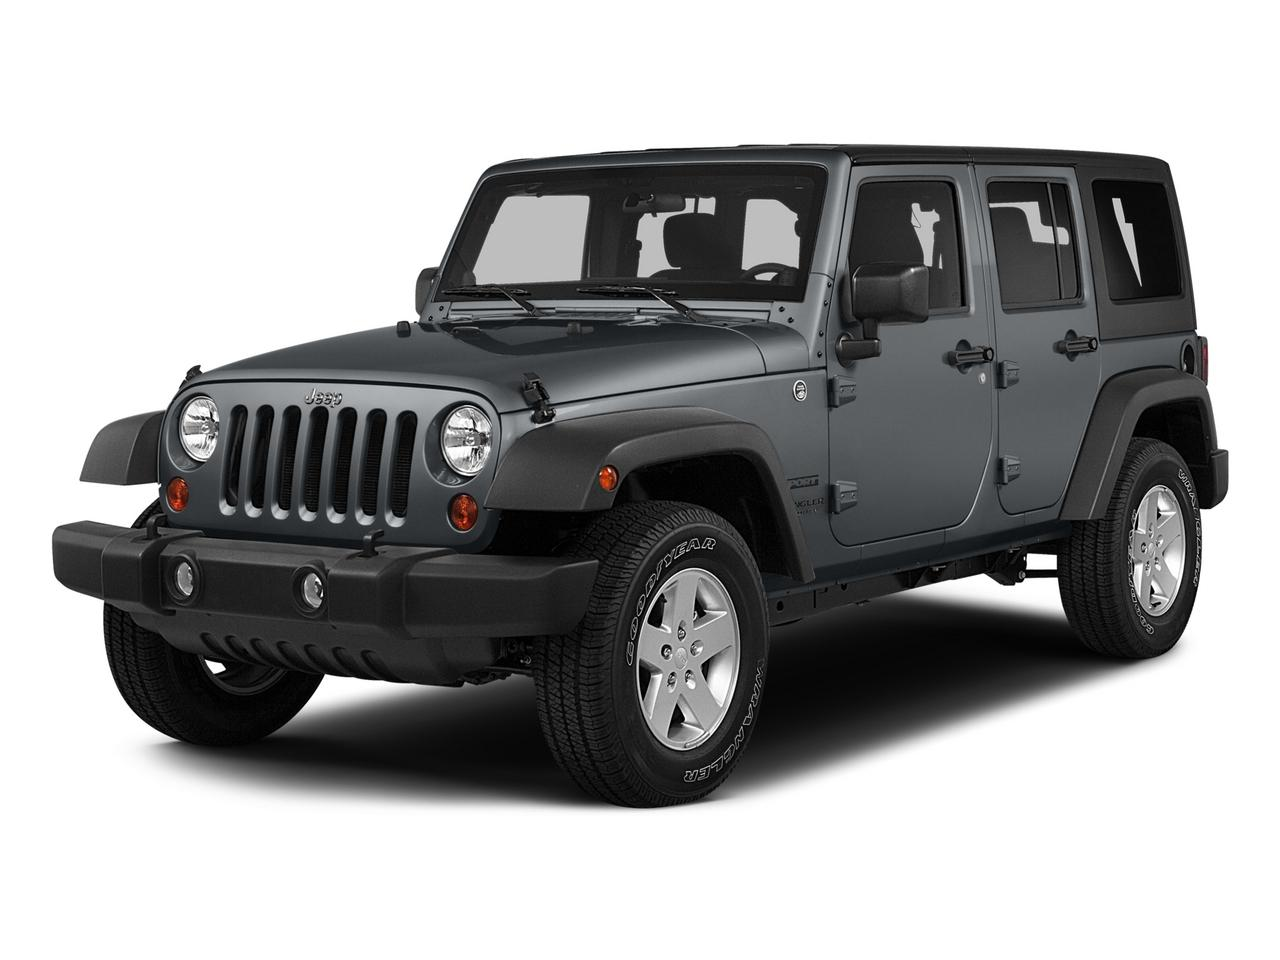 2015 Jeep Wrangler Unlimited Vehicle Photo in Killeen, TX 76541